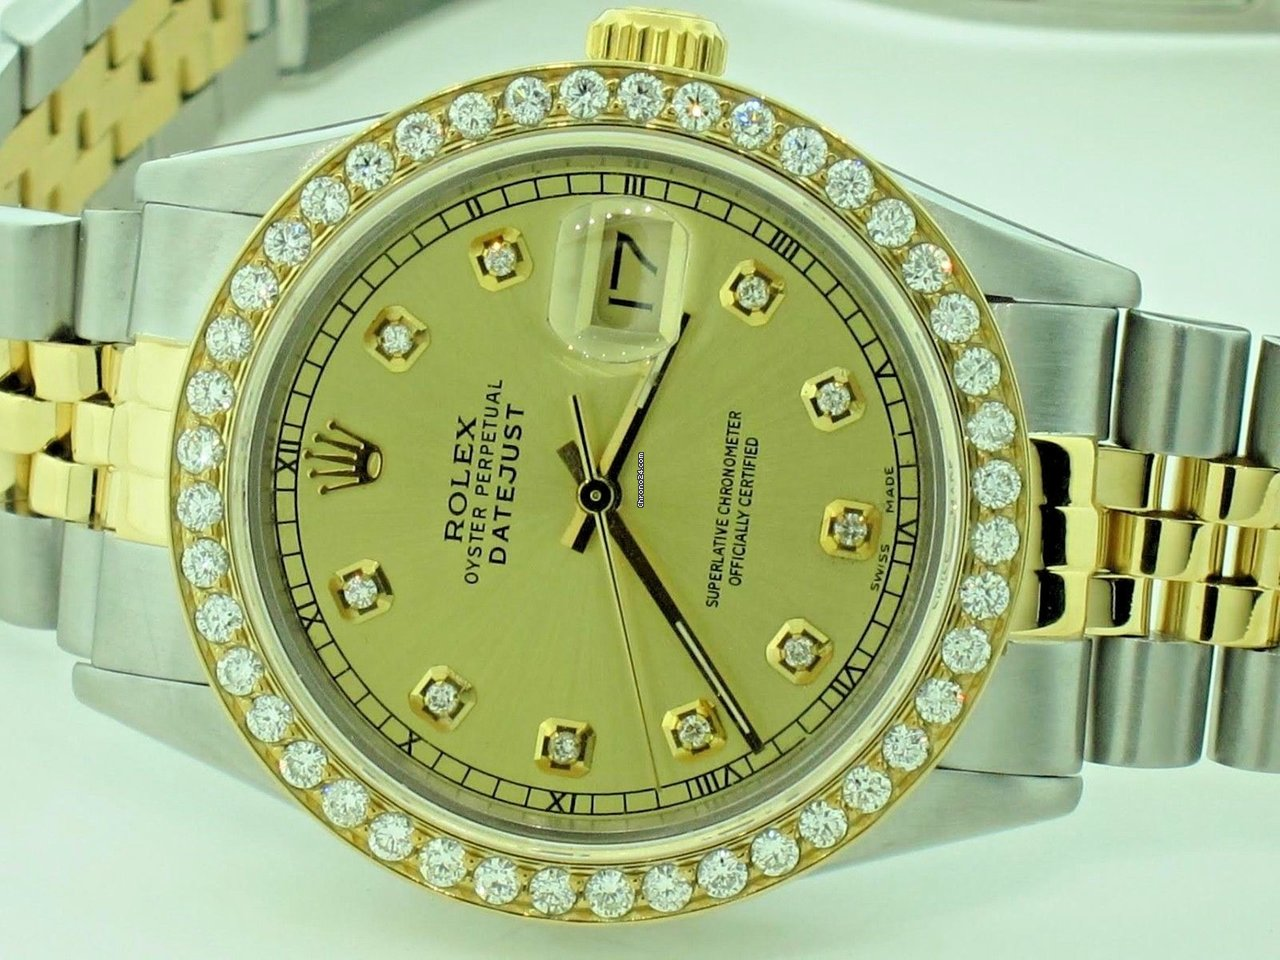 Rolex Datejust Oyster Perpetual 18K Gold Automatic Diamonds